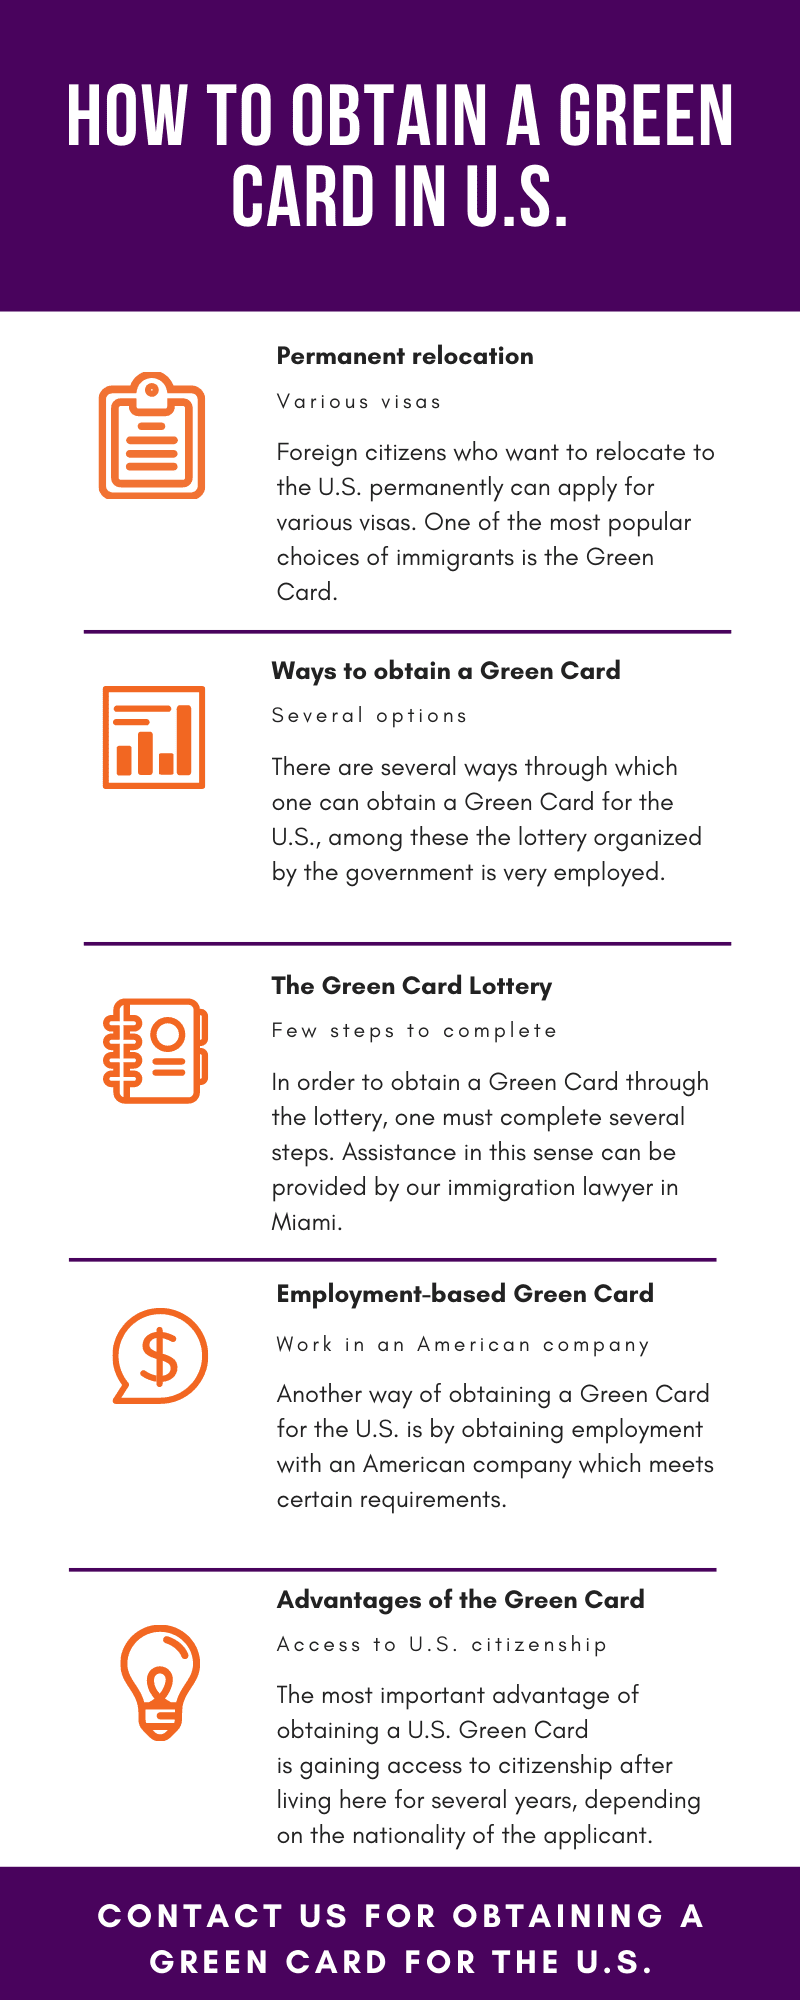 How to Obtain a Green Card in US